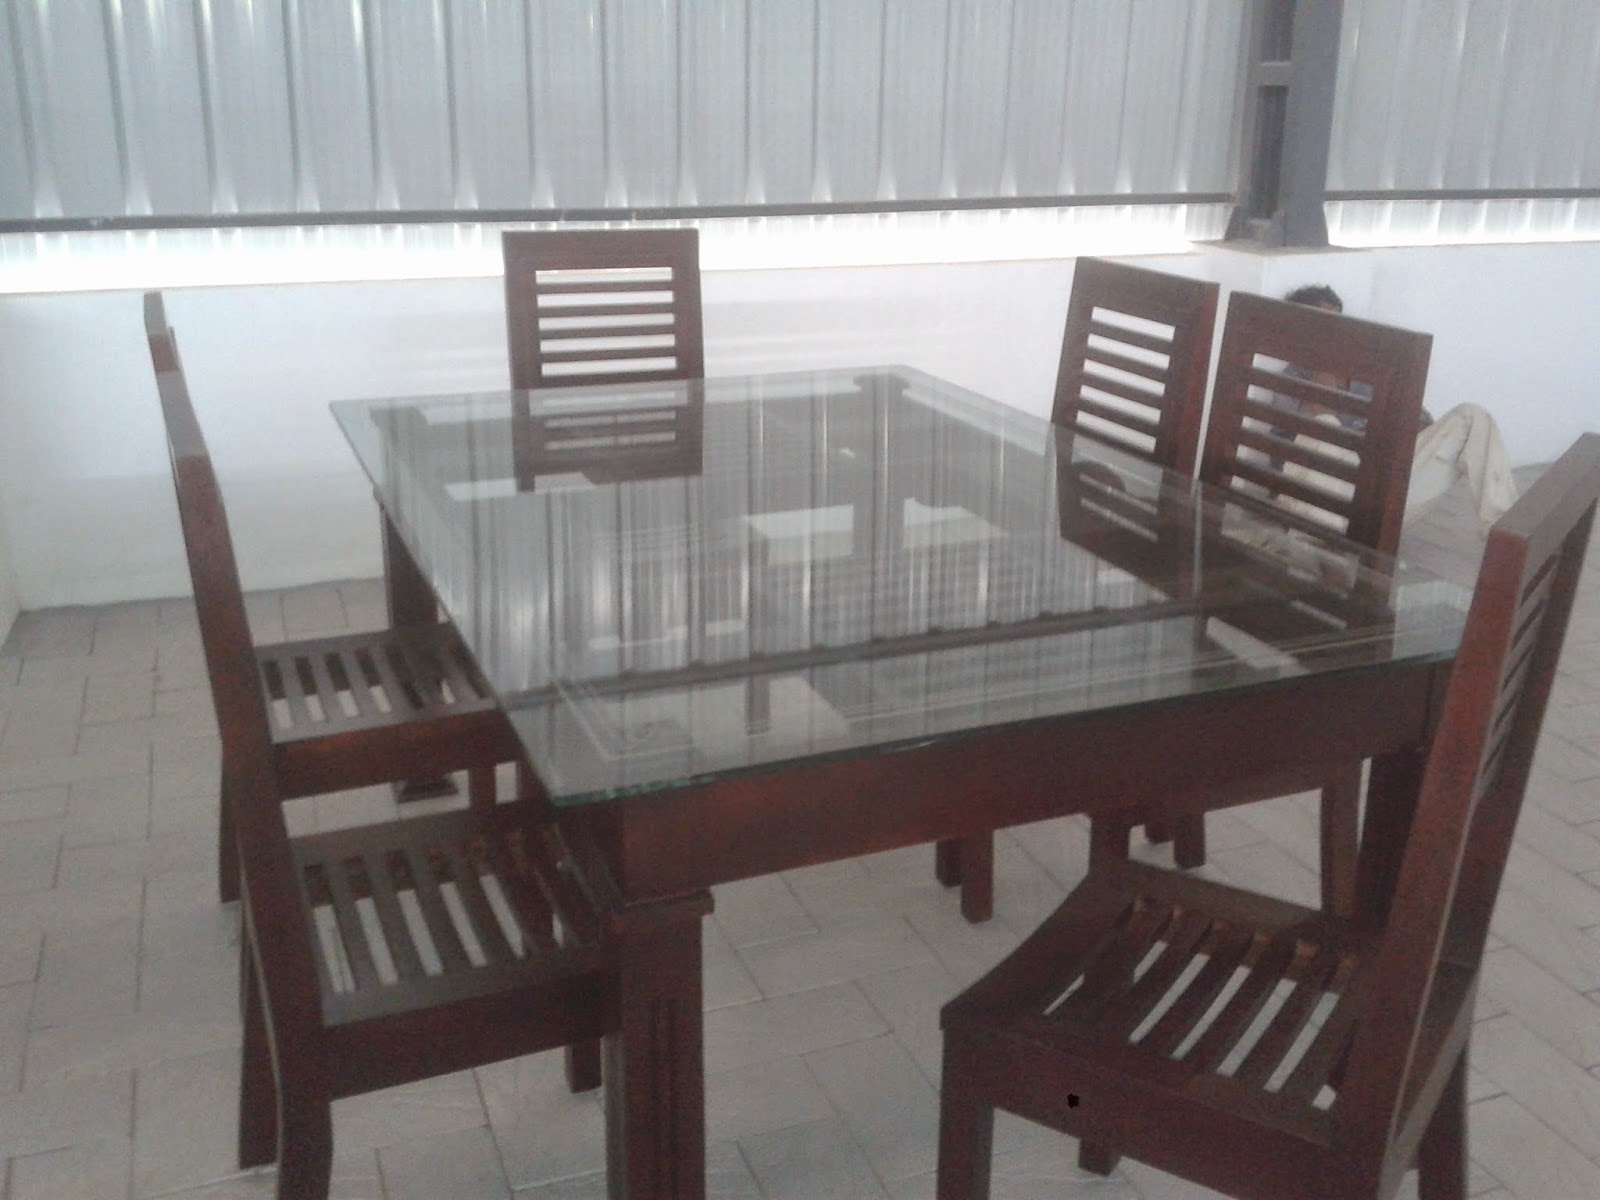 Wooden Chair Design Dining With Refrigerator Kerala Style Carpenter Works And Designs Attractive